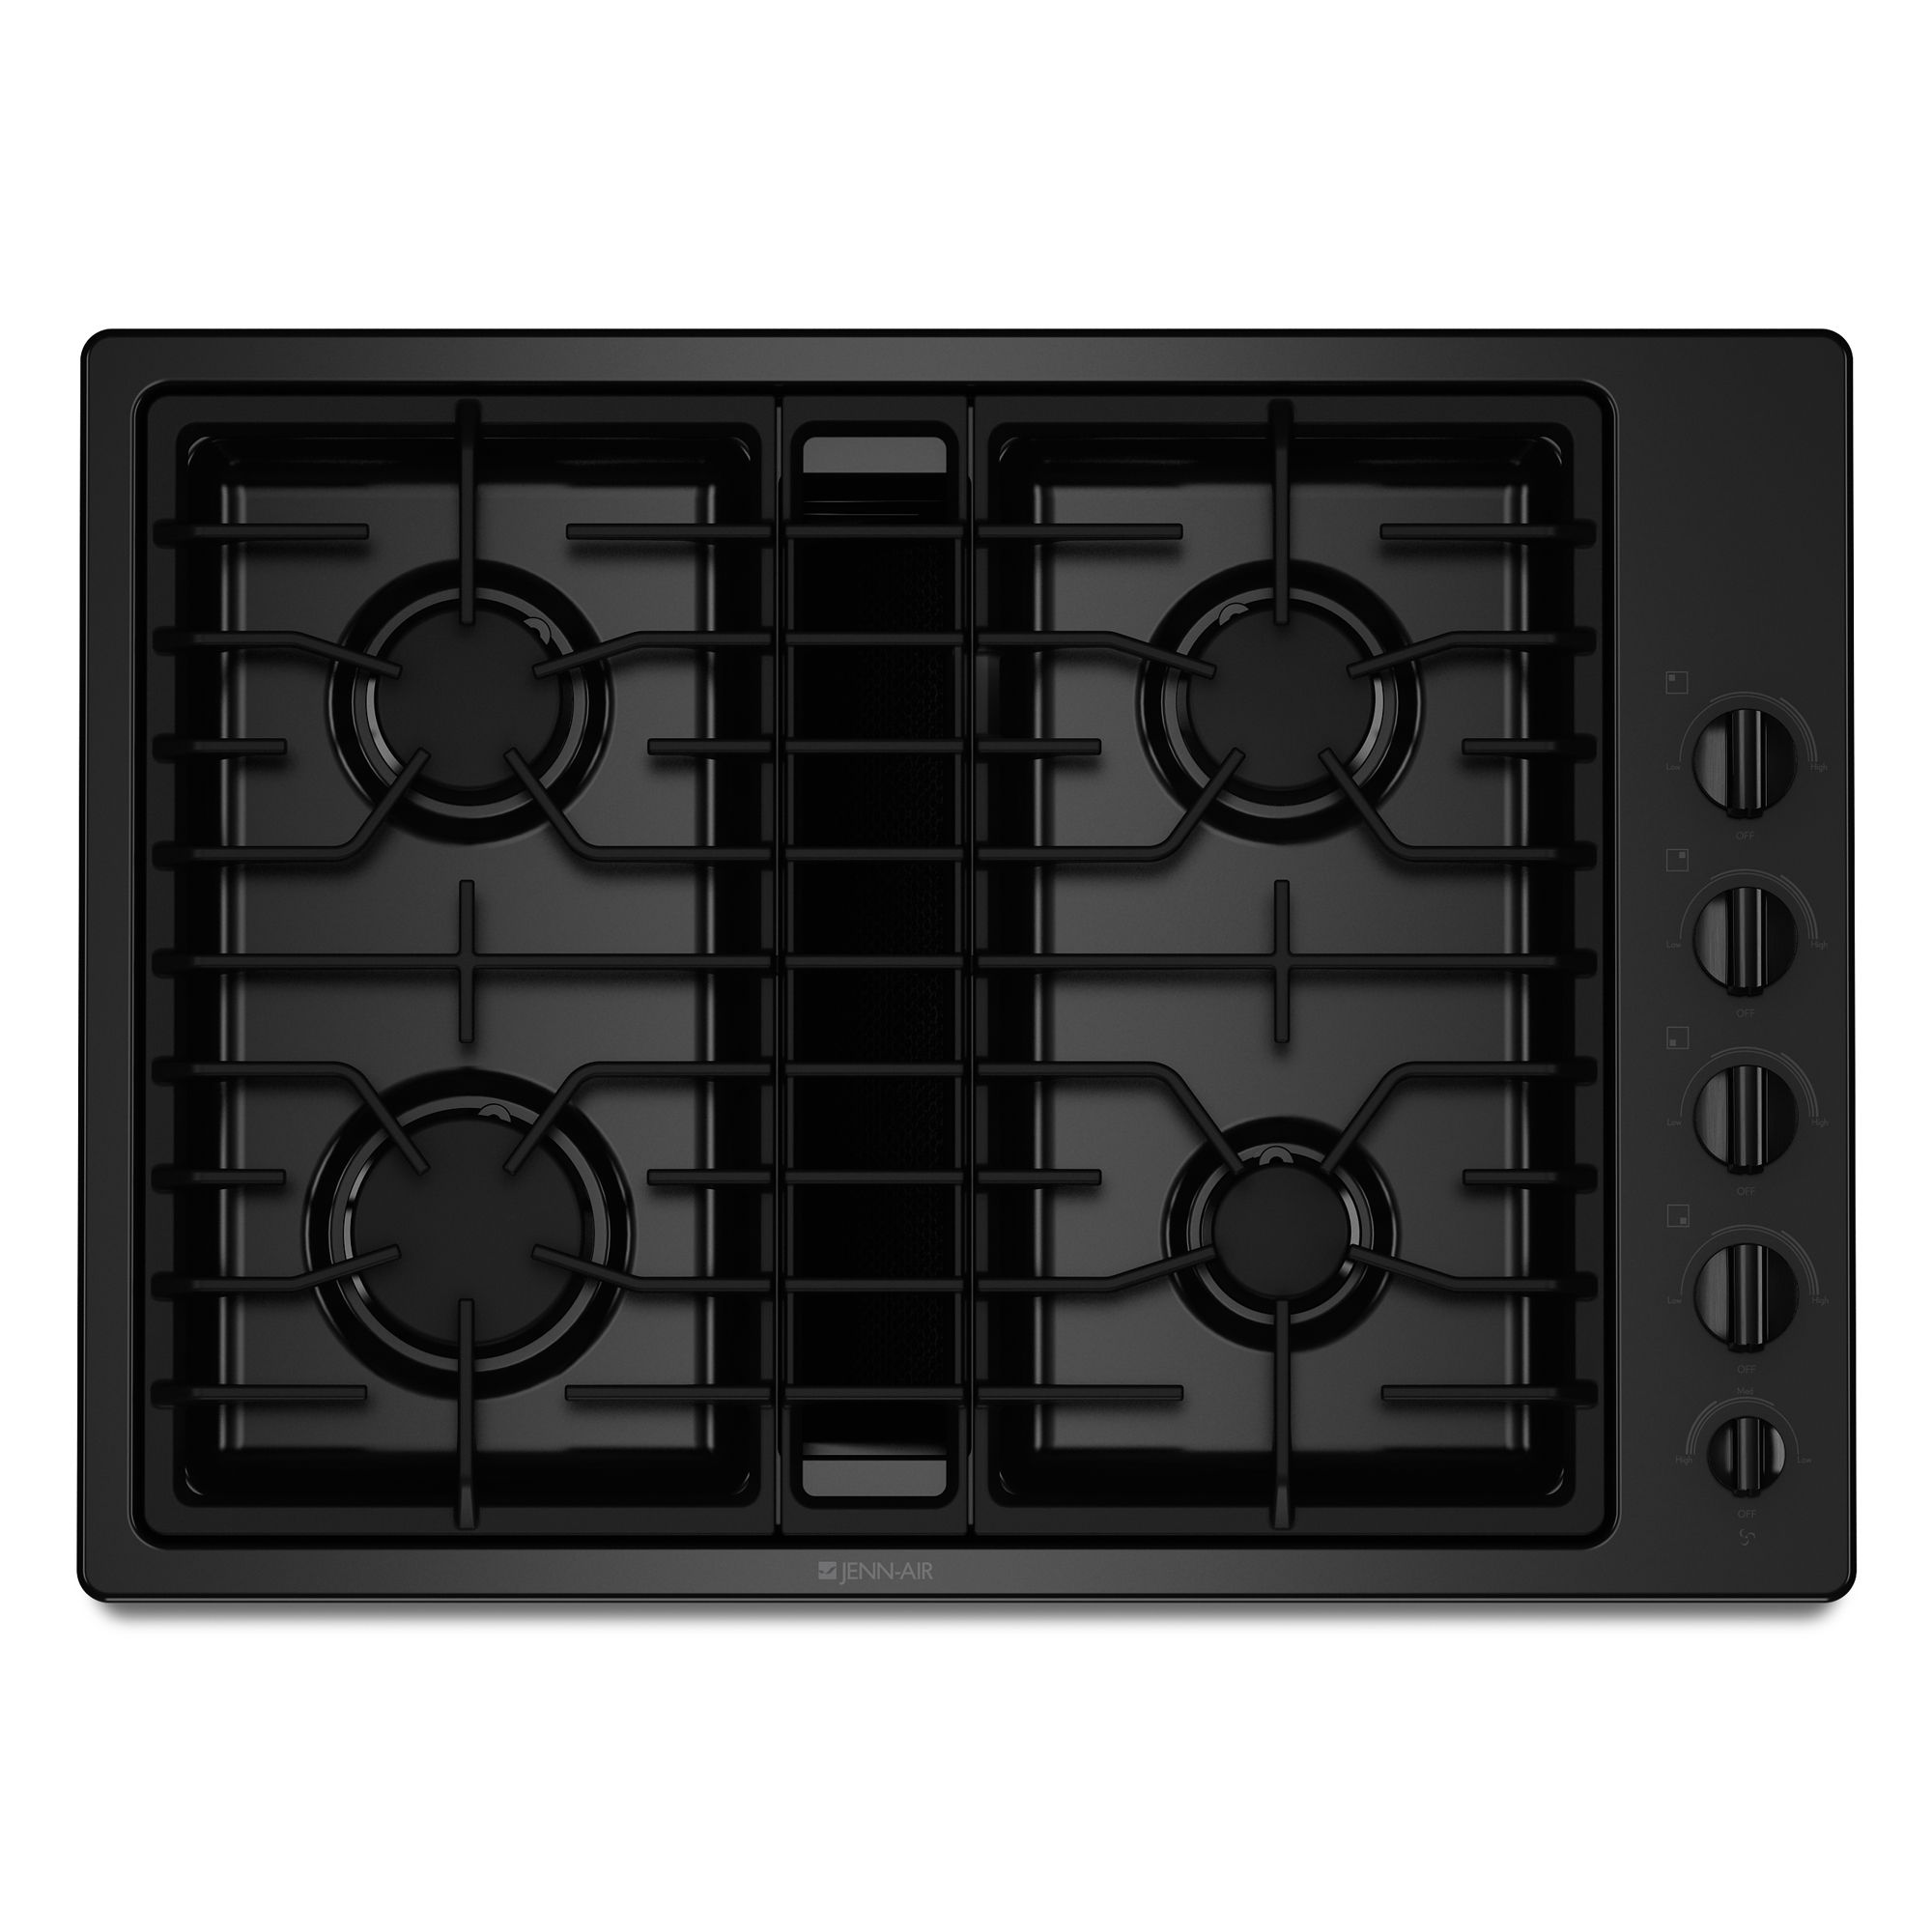 Jenn-Air 30 Gas Downdraft Cooktop